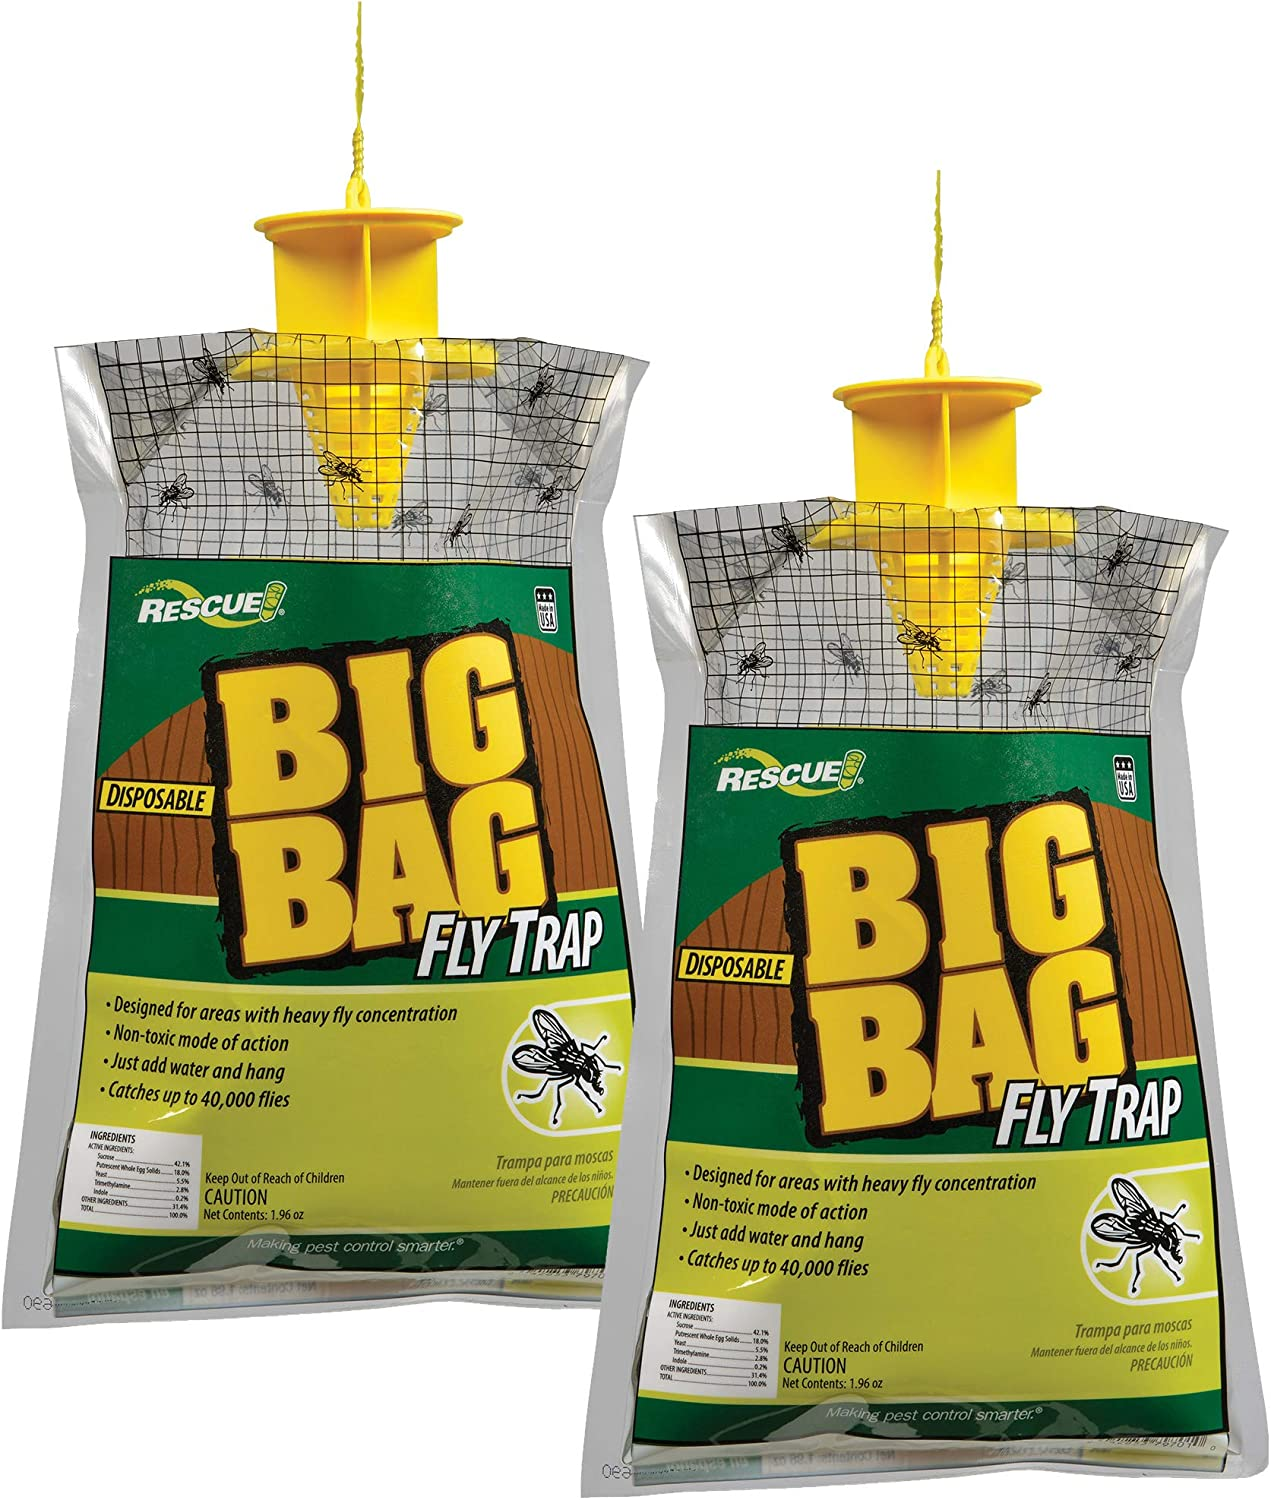 RESCUE Outdoor Non-Toxic Disposable Big Bag Fly Trap, 2 Pack